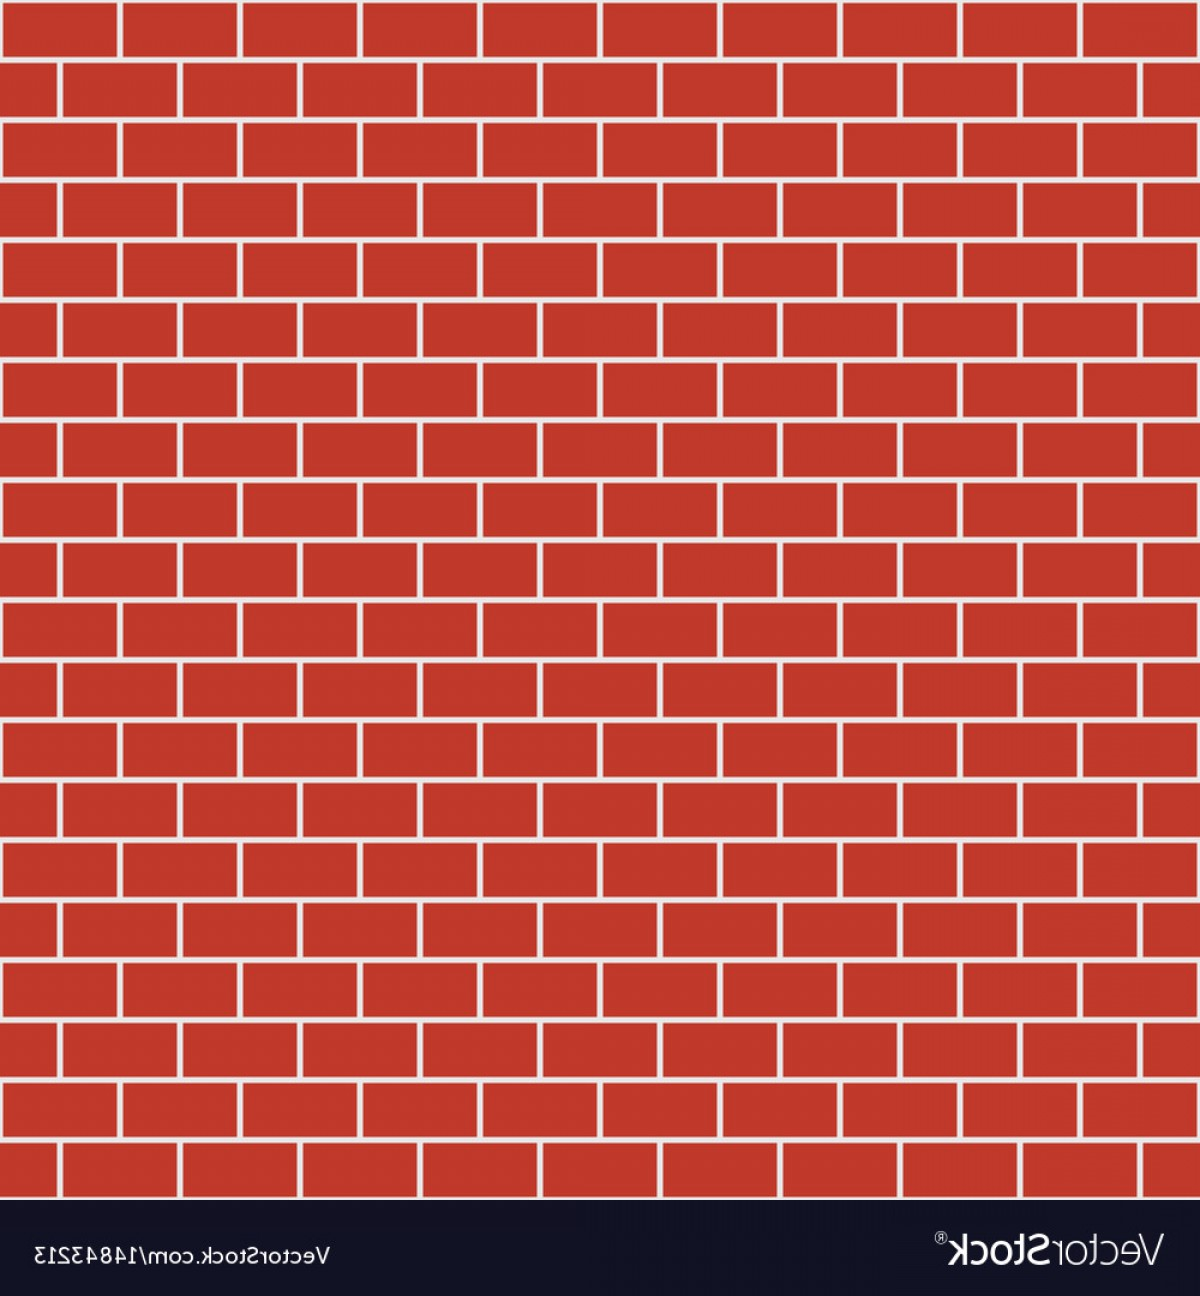 Wall Background Vector: Brick Pattern Seamless Brick Wall Background Vector